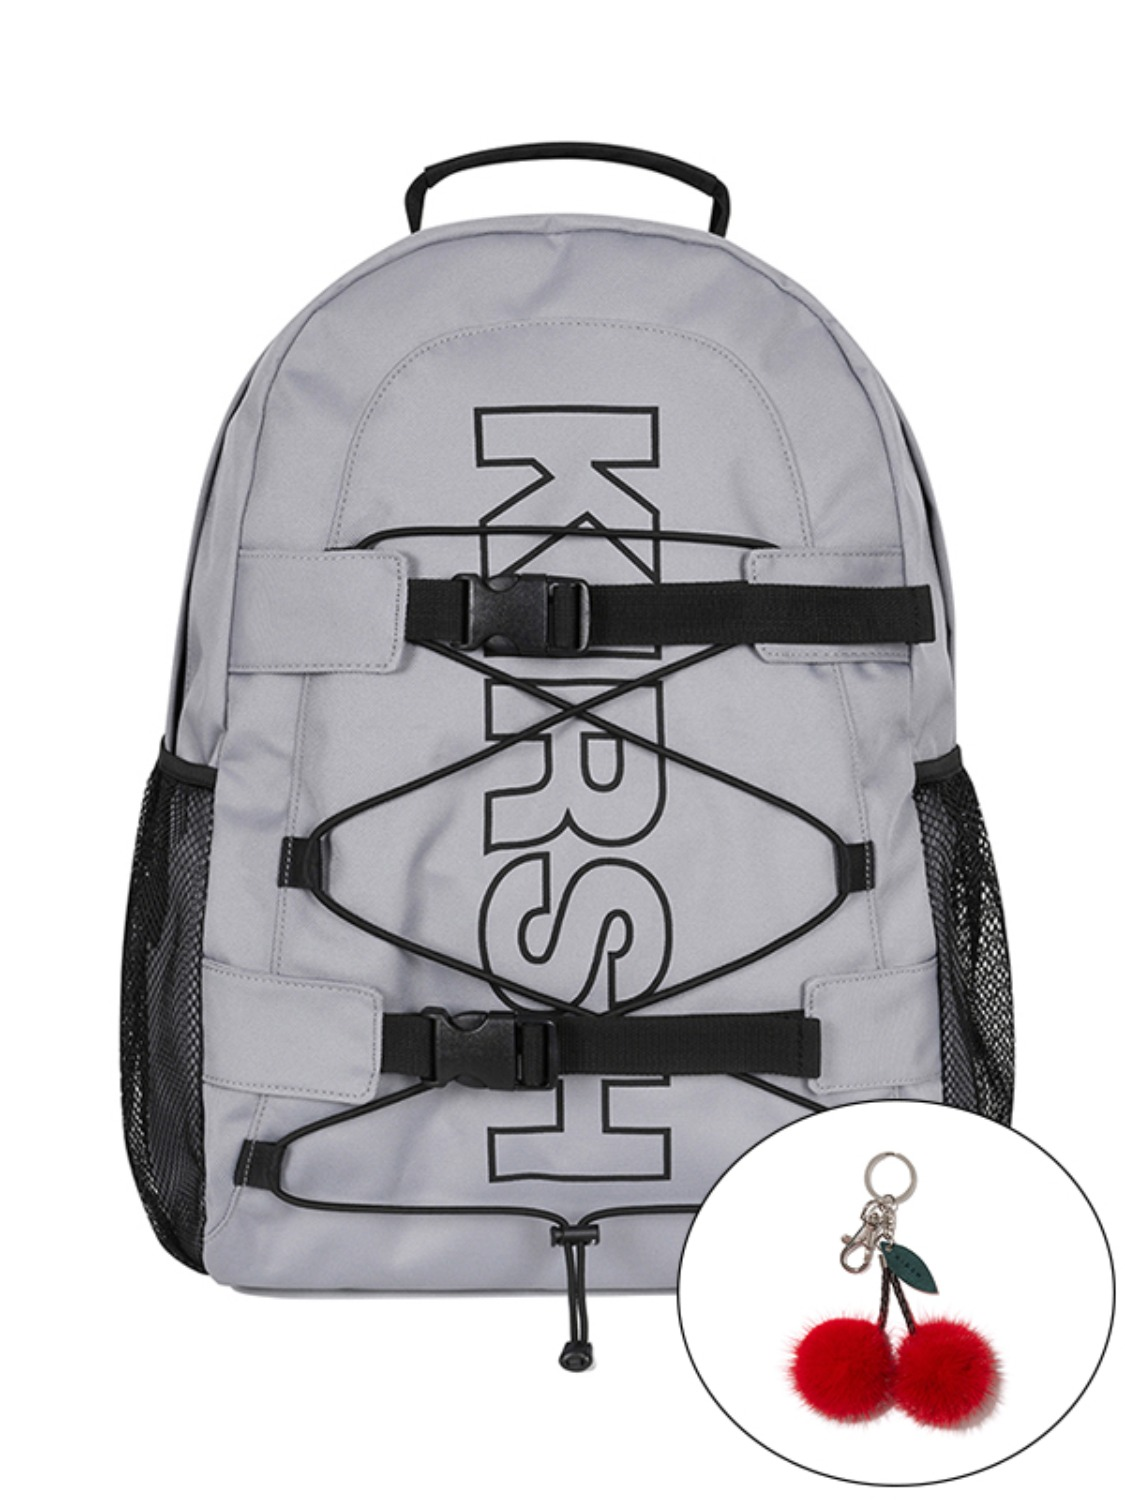 KIRSH POCKET SPORTS BACKPACK JA [GRAY]